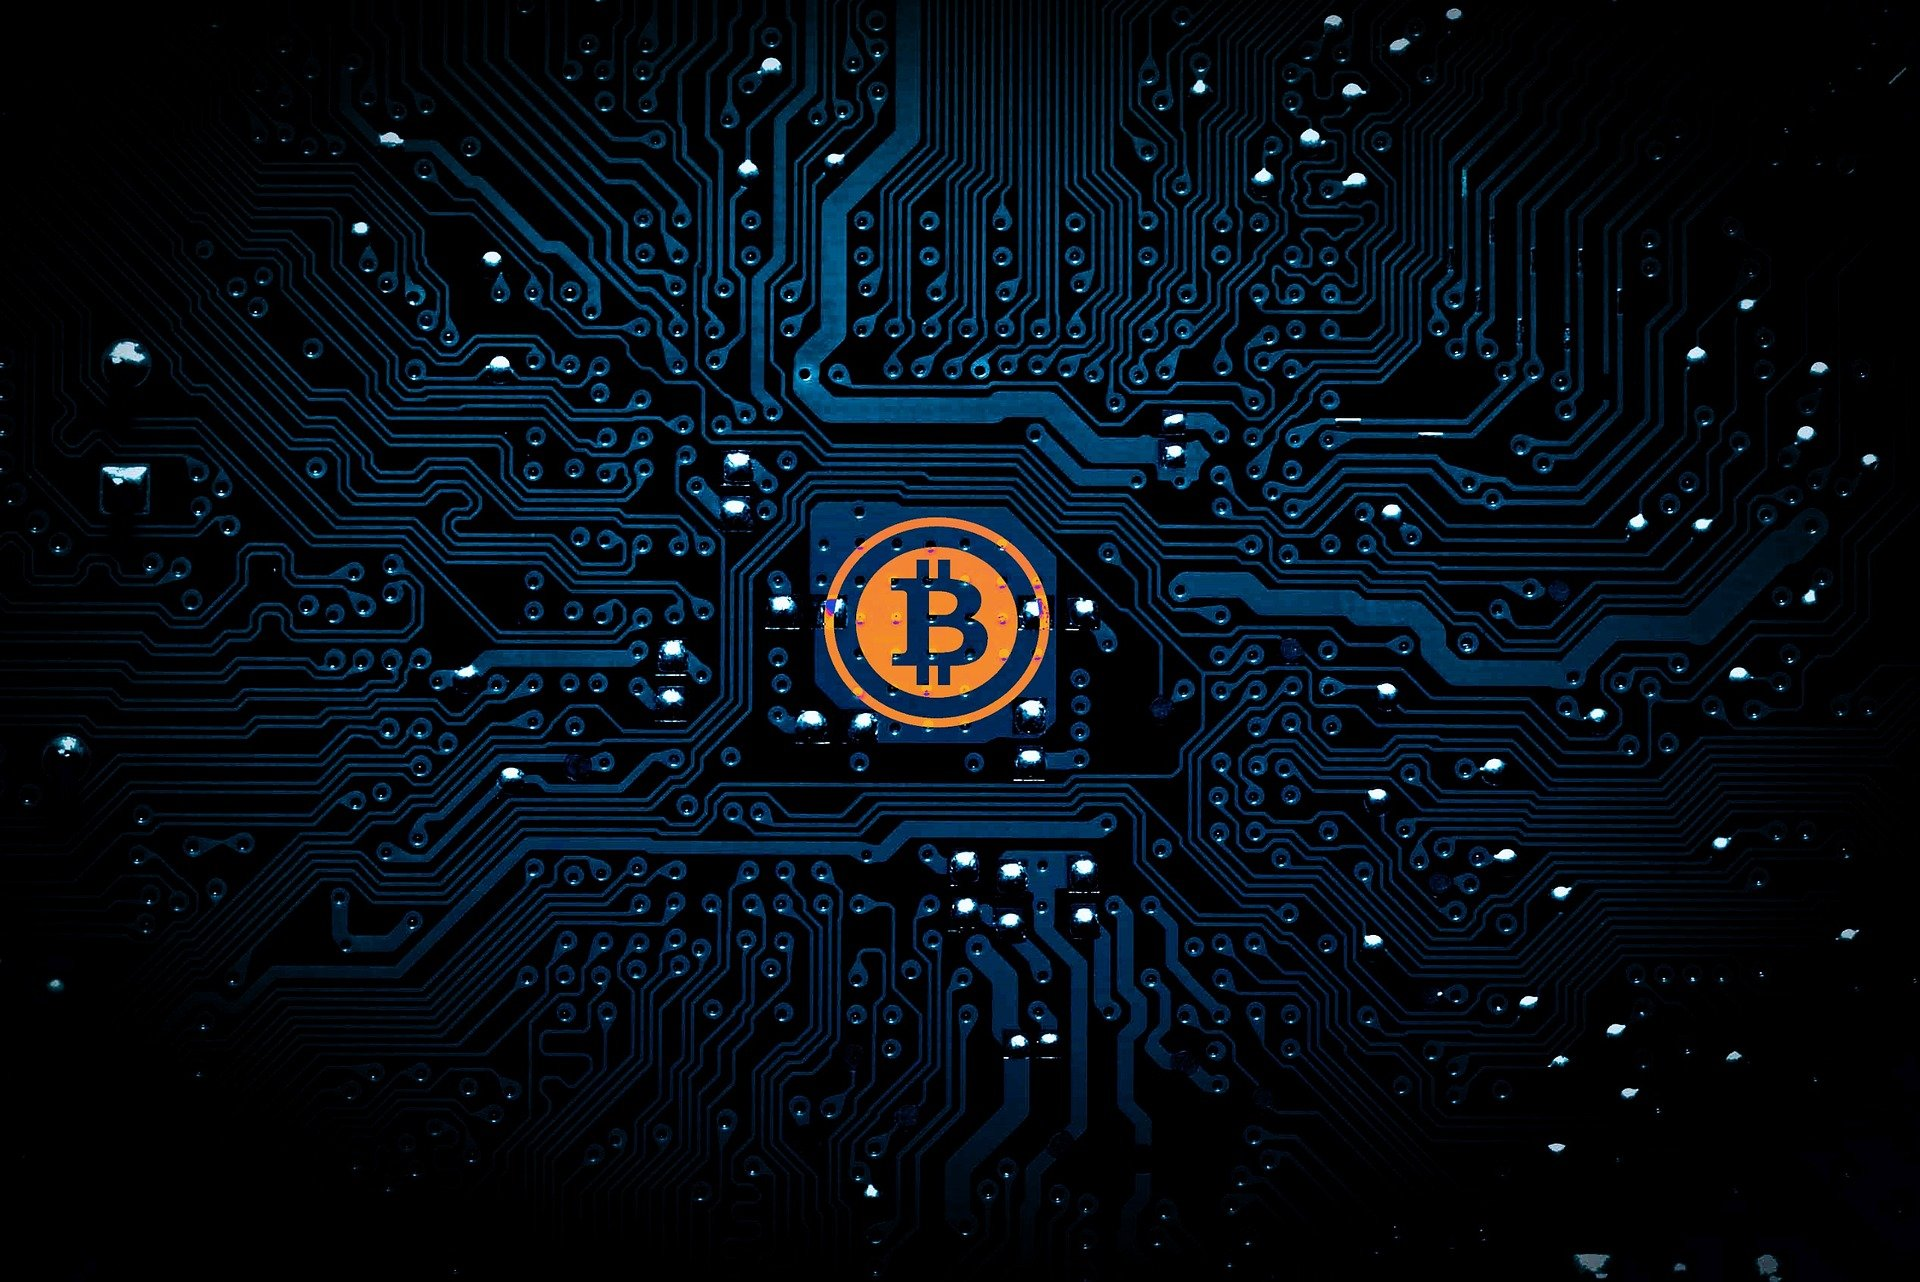 bitcoin 1813503 1920.jpg?resize=412,232 - 誰でもわかる仮想通貨の仕組み Part3